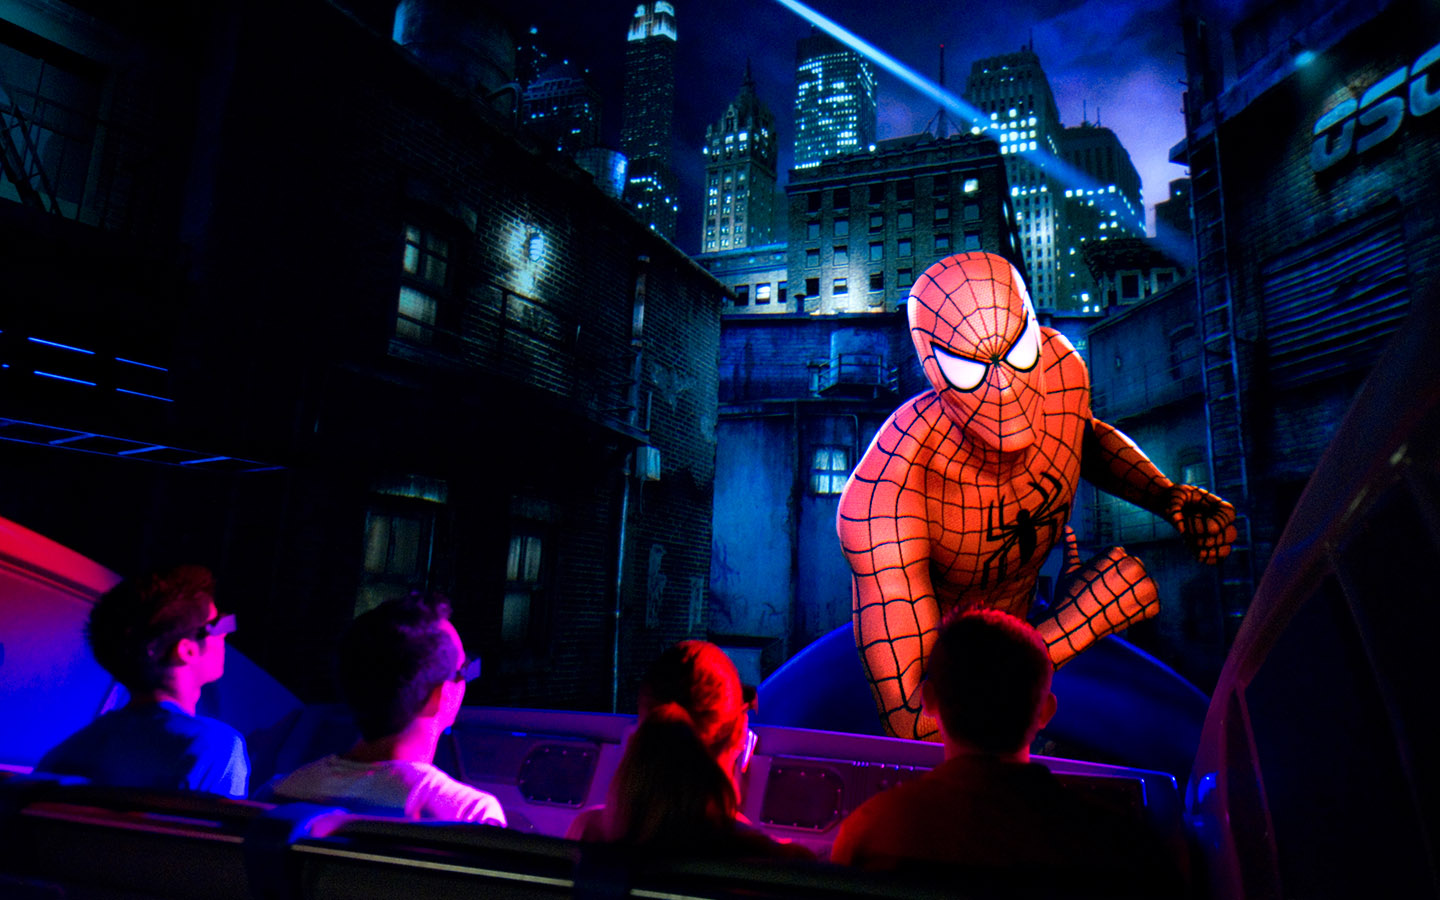 Swing through the streets of New York with Spider-Man on The Amazing Adventures of Spider-Man at Universal's Islands of Adventure